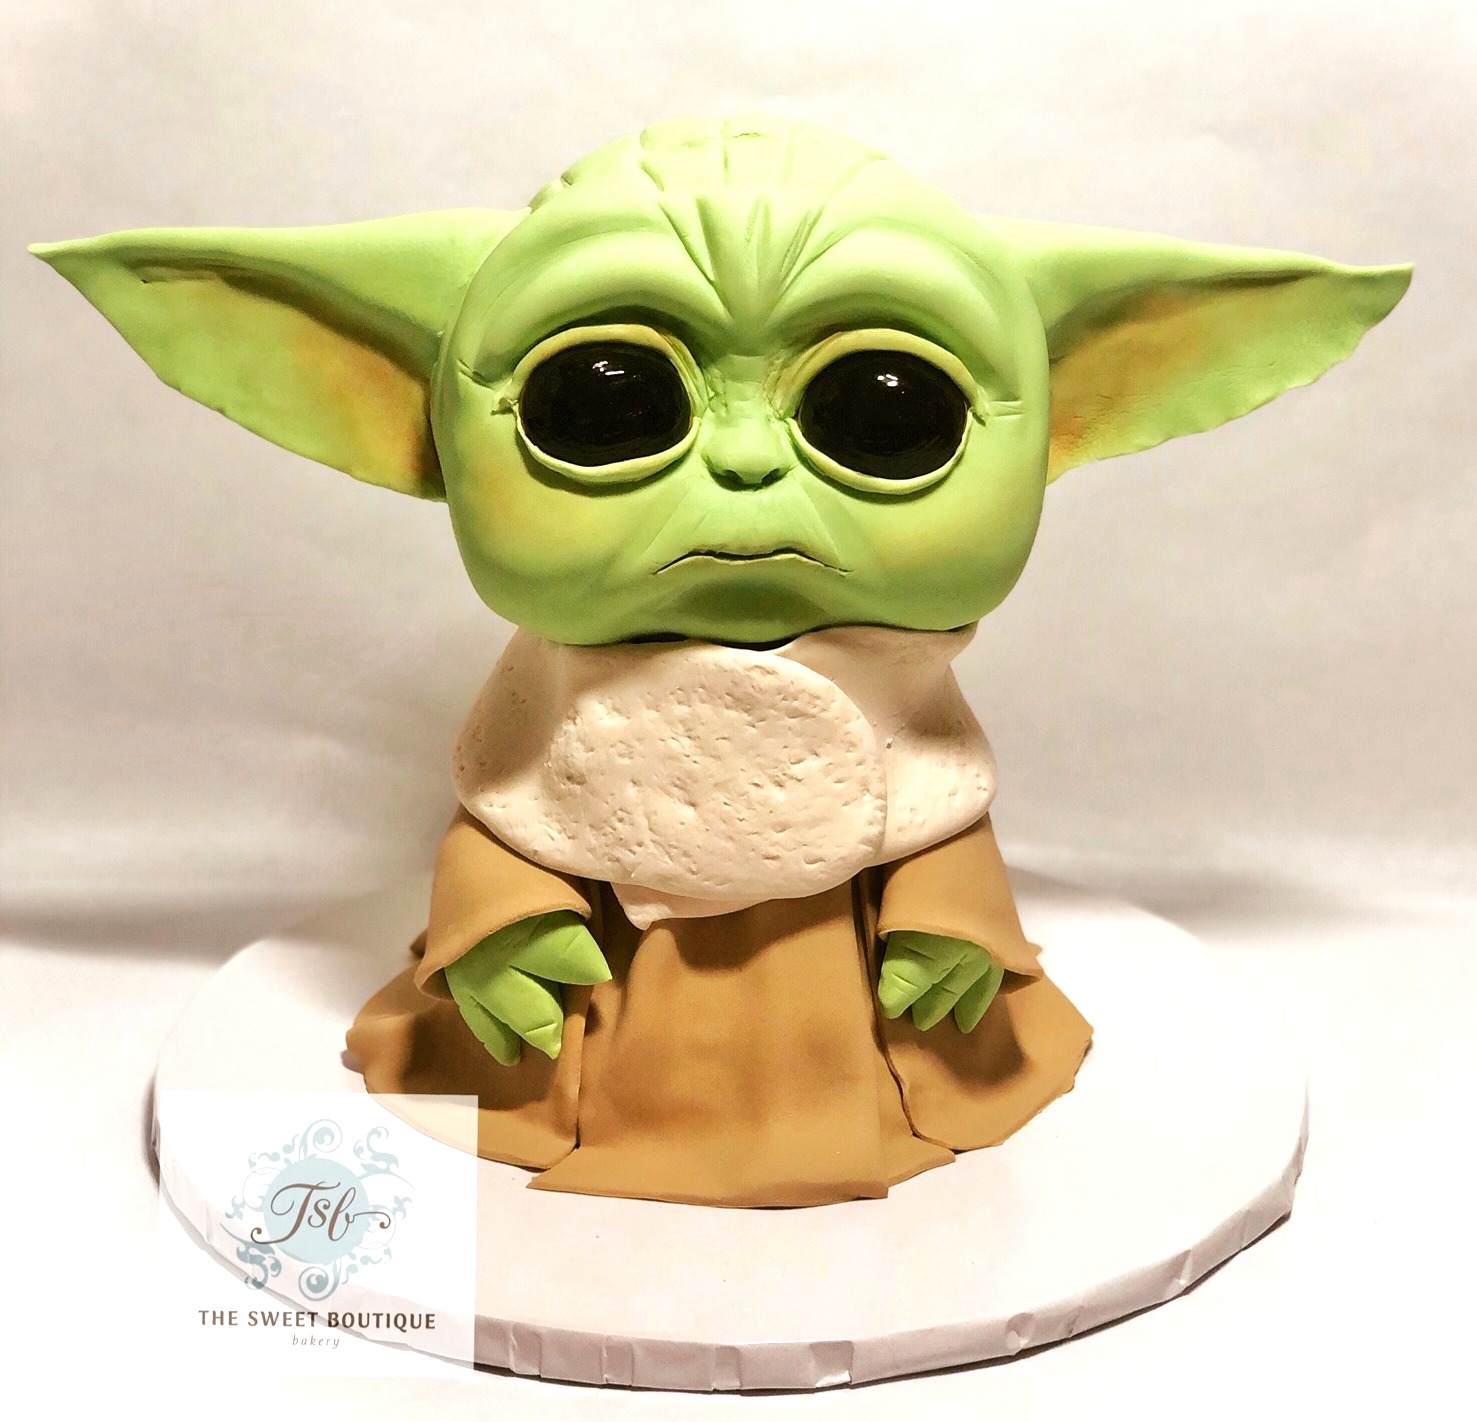 3D Sculpted Baby Yoda Cake